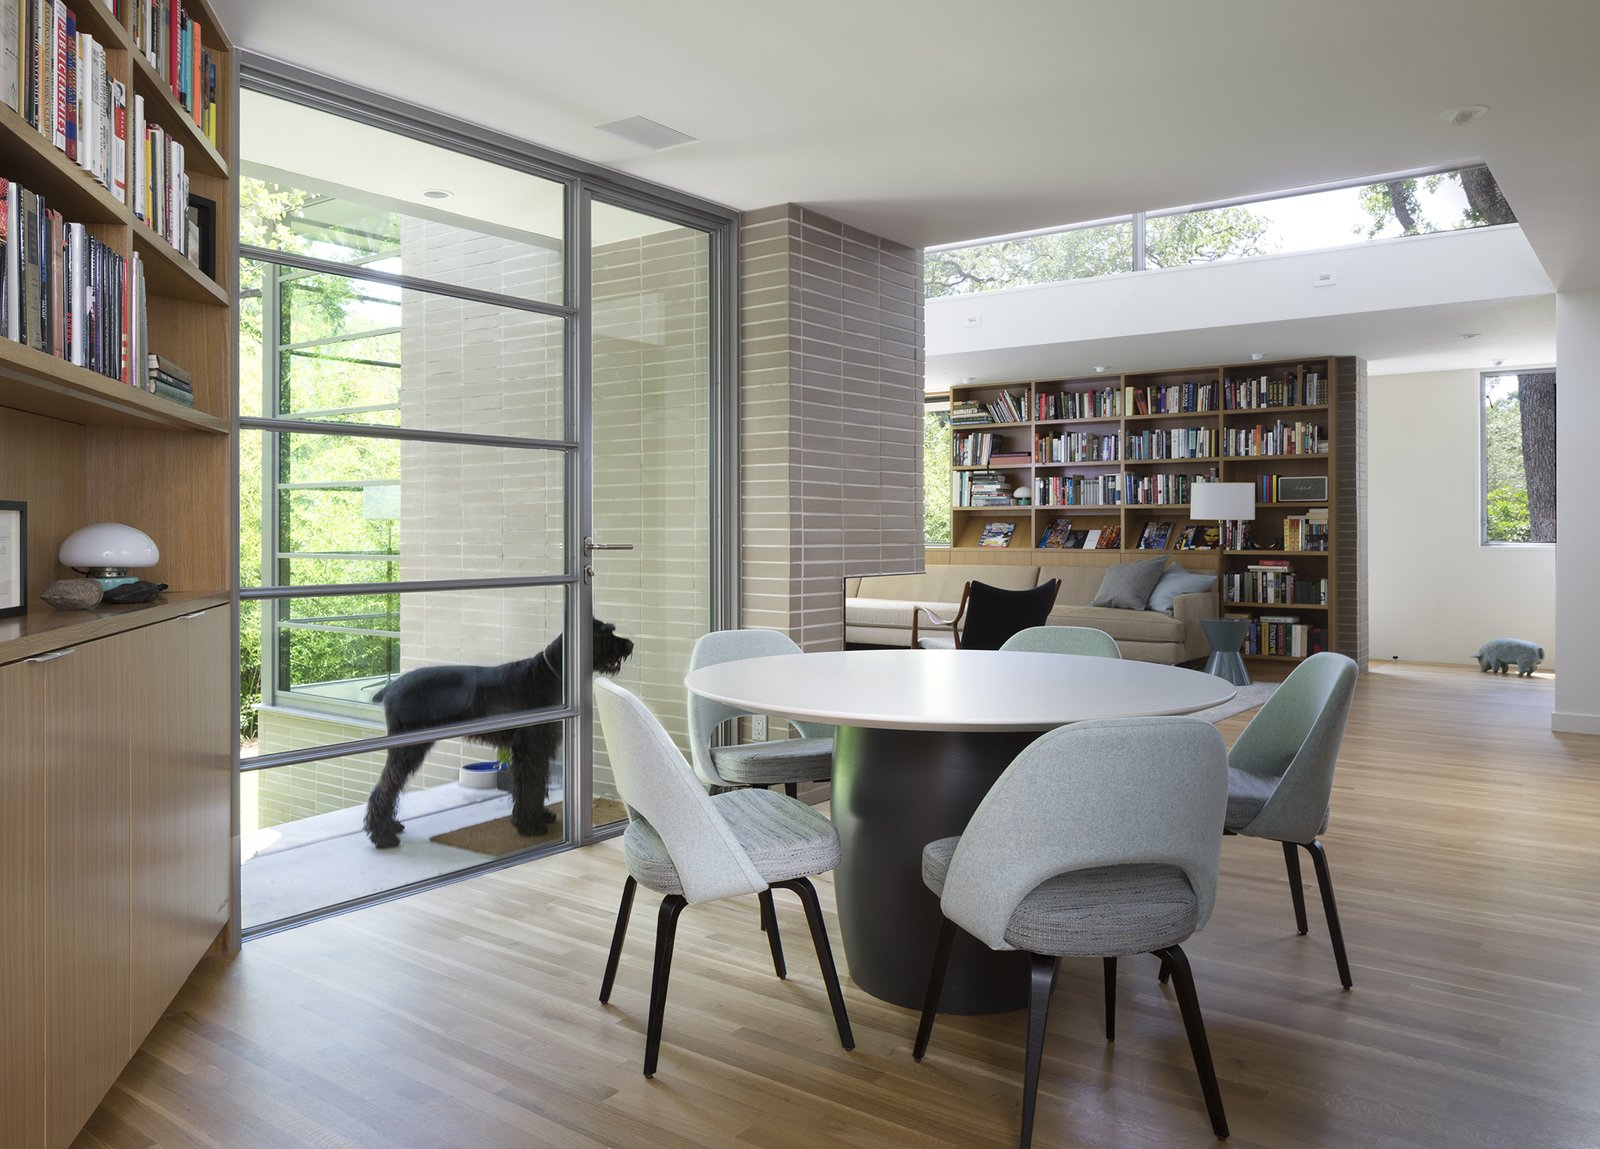 Dining Room, Chair, Table, Recessed Lighting, and Light Hardwood Floor  Inwood Place by Tim Cuppett Architects